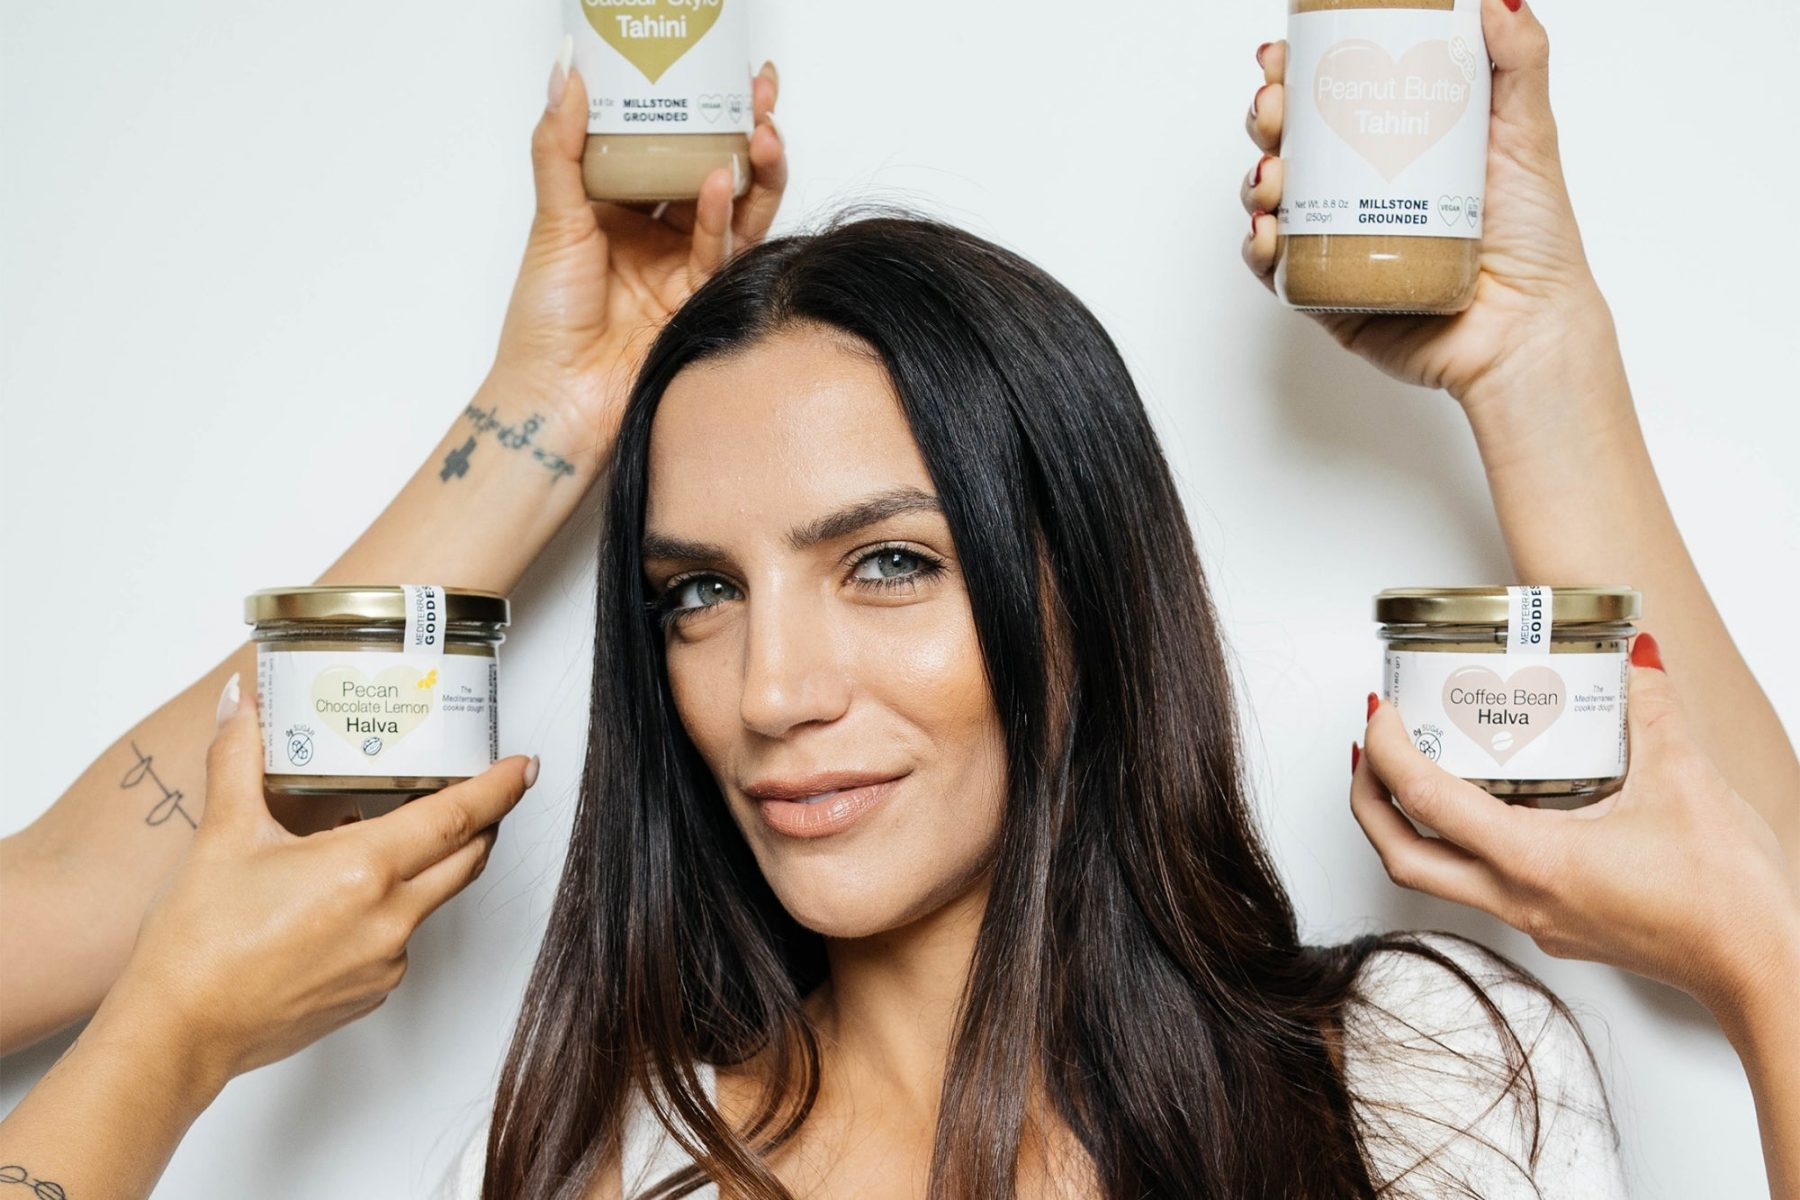 tahini-is-the-hottest-new-food-trend-this-founder's-israel-made-tahini-and-sugar-free-halva,-the-only-sold-in-the-us,-saw-rapid-success-despite-the-pandemic.